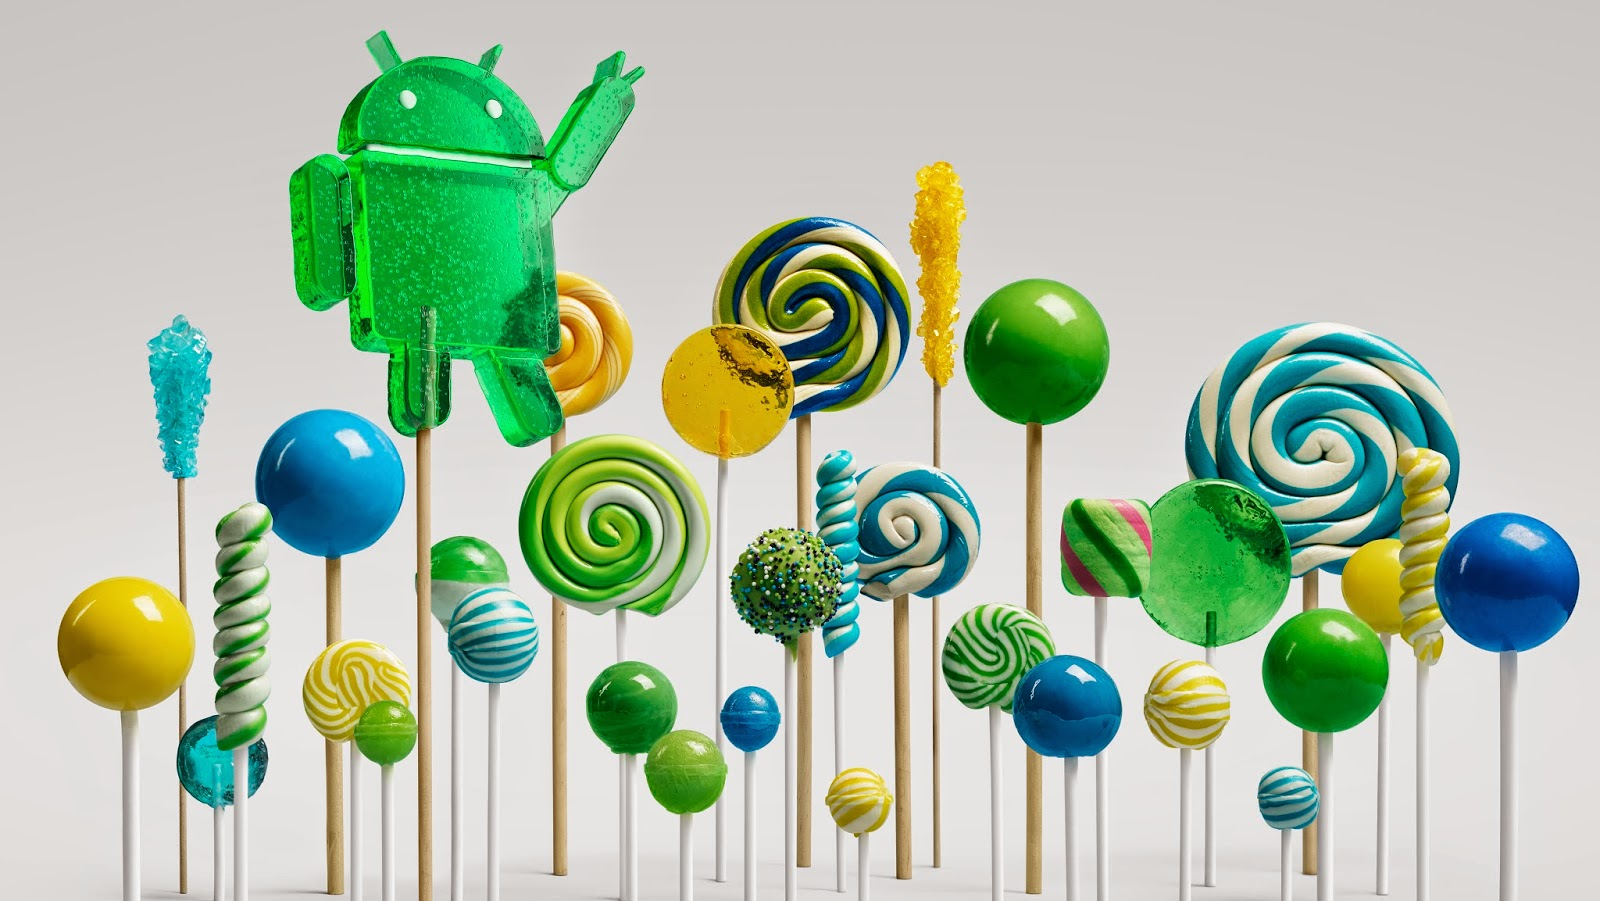 Google android phones - 4444